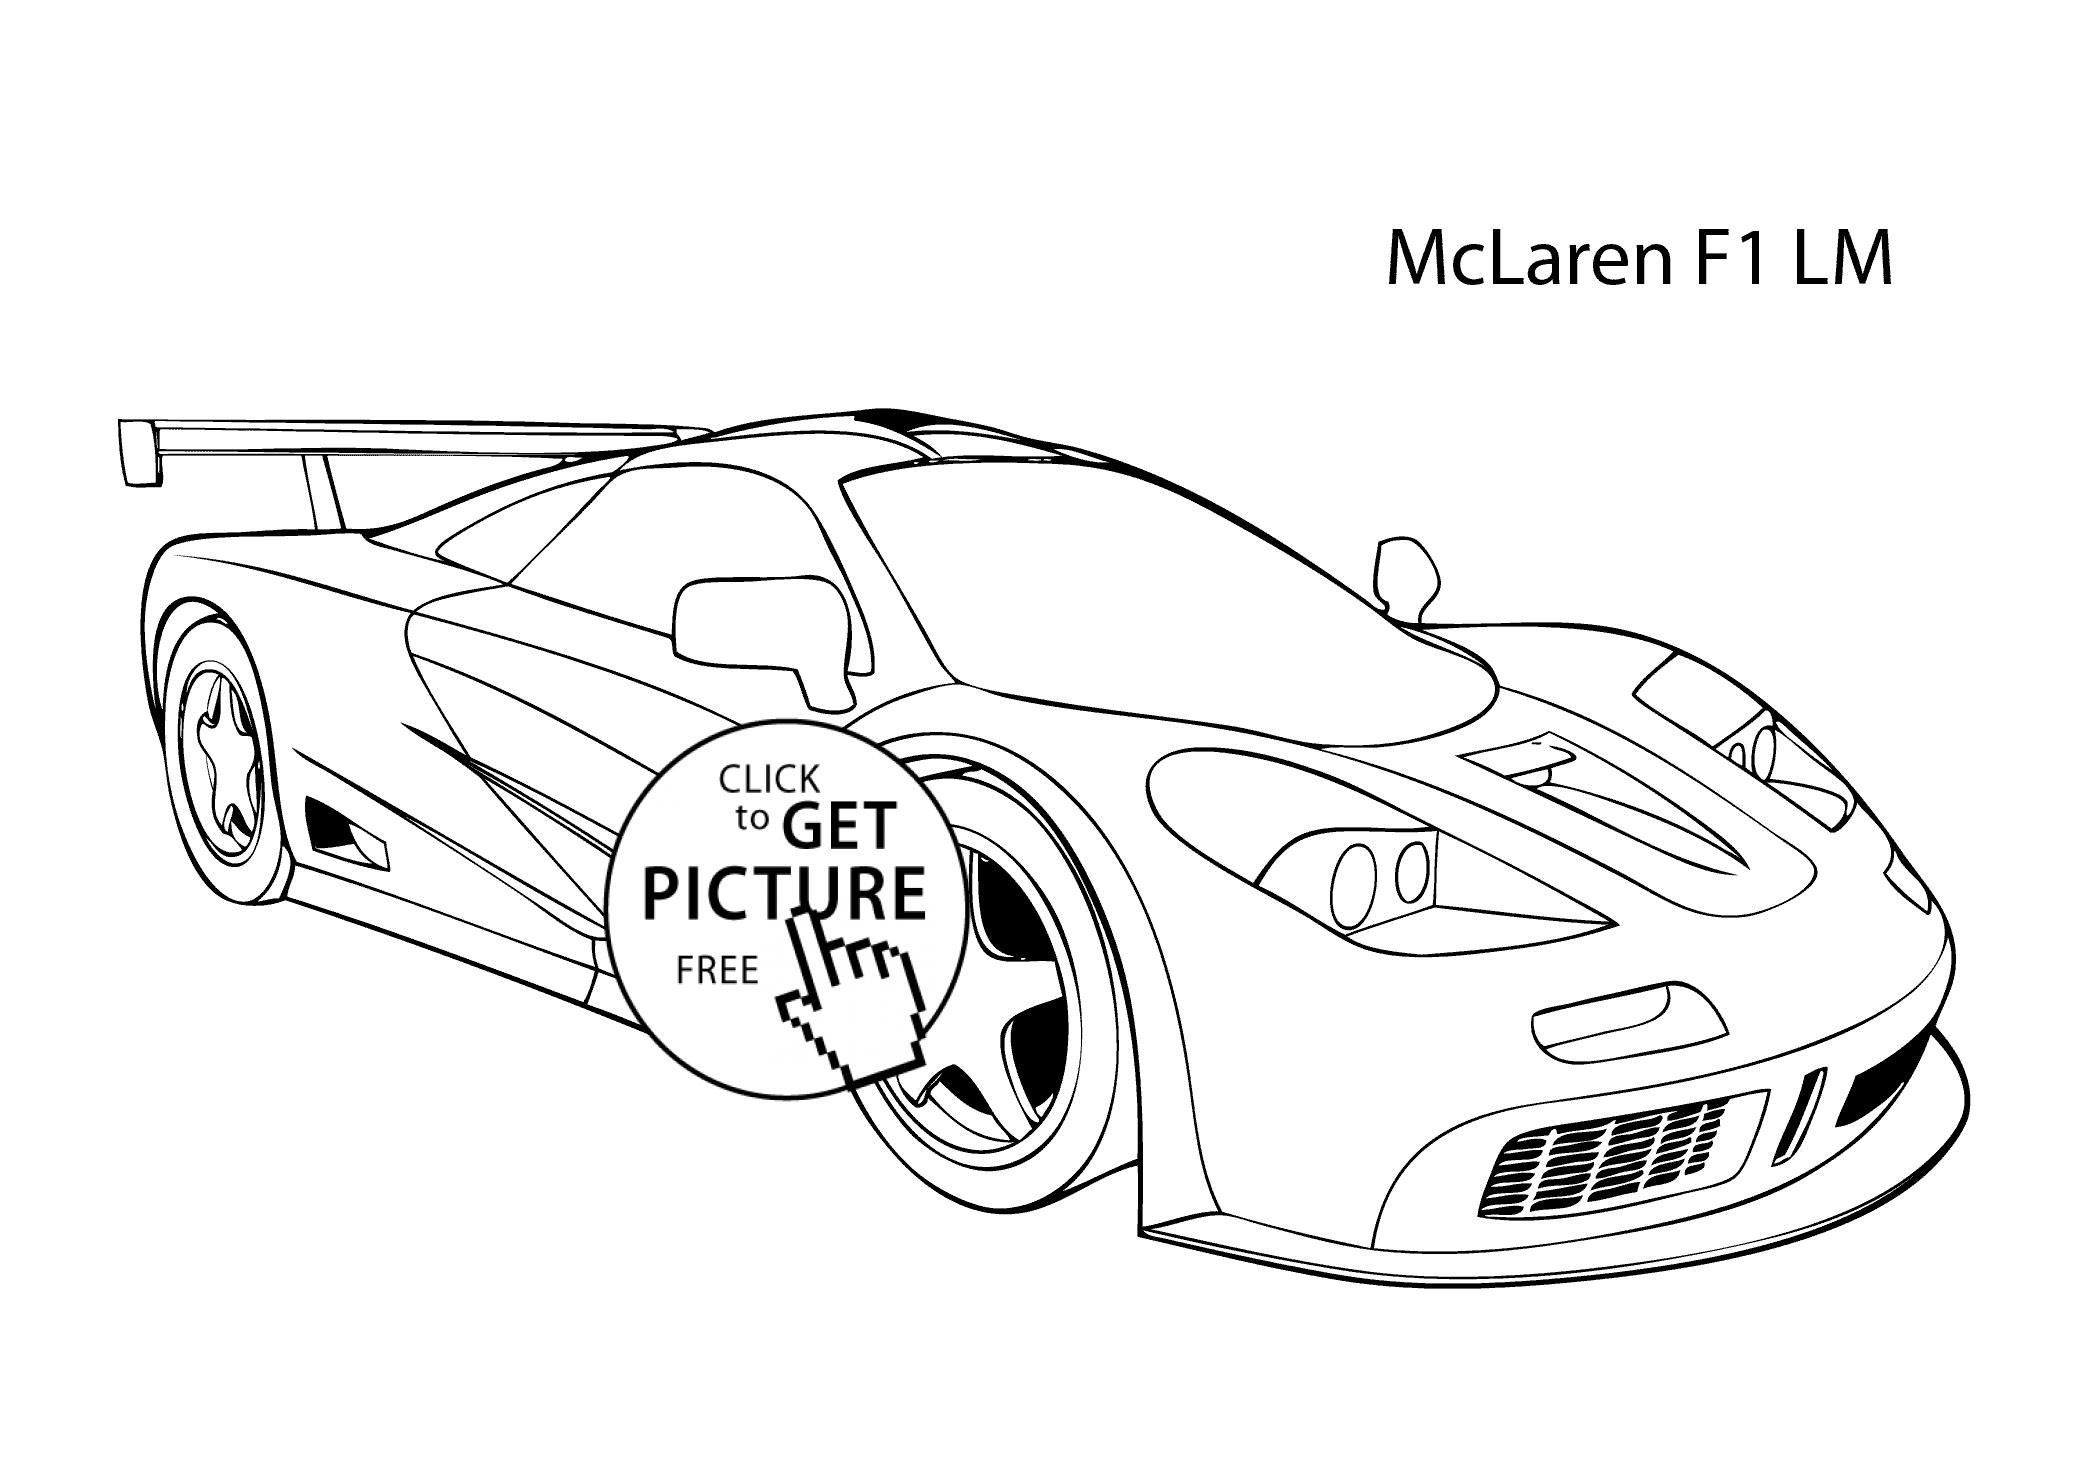 42 Free Printable Coloring Pages Of Cars Cars Coloring Pages Free Printable Coloring Pages Coloring Pages